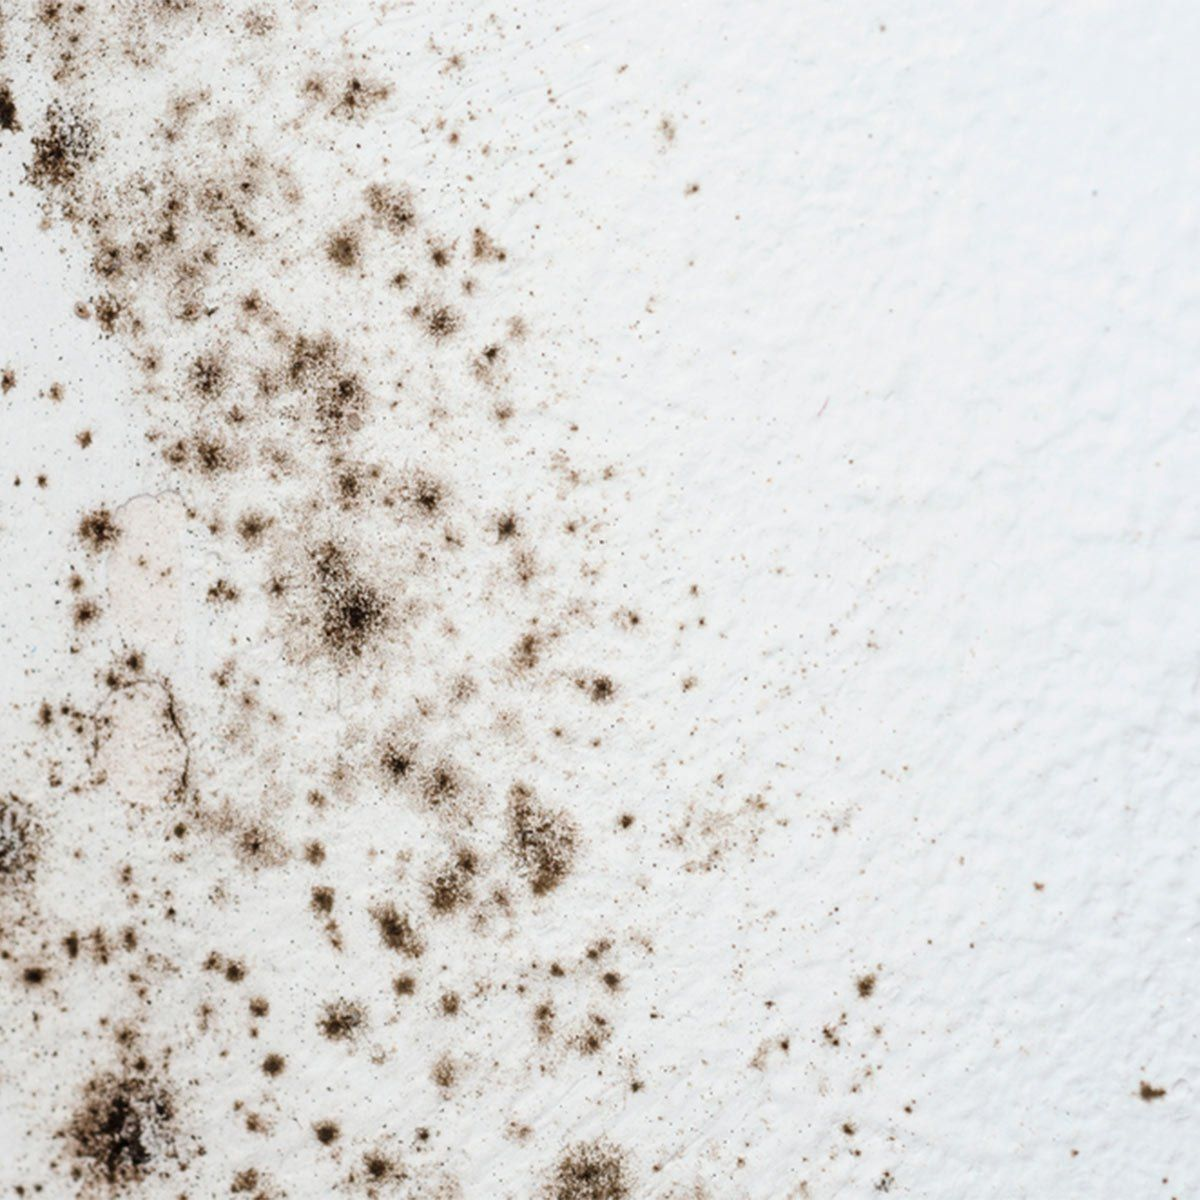 How To Get Rid Of Mold On Walls In The Bathroom Mold On Bathroom Ceiling Mold Remover Mold In Bathroom